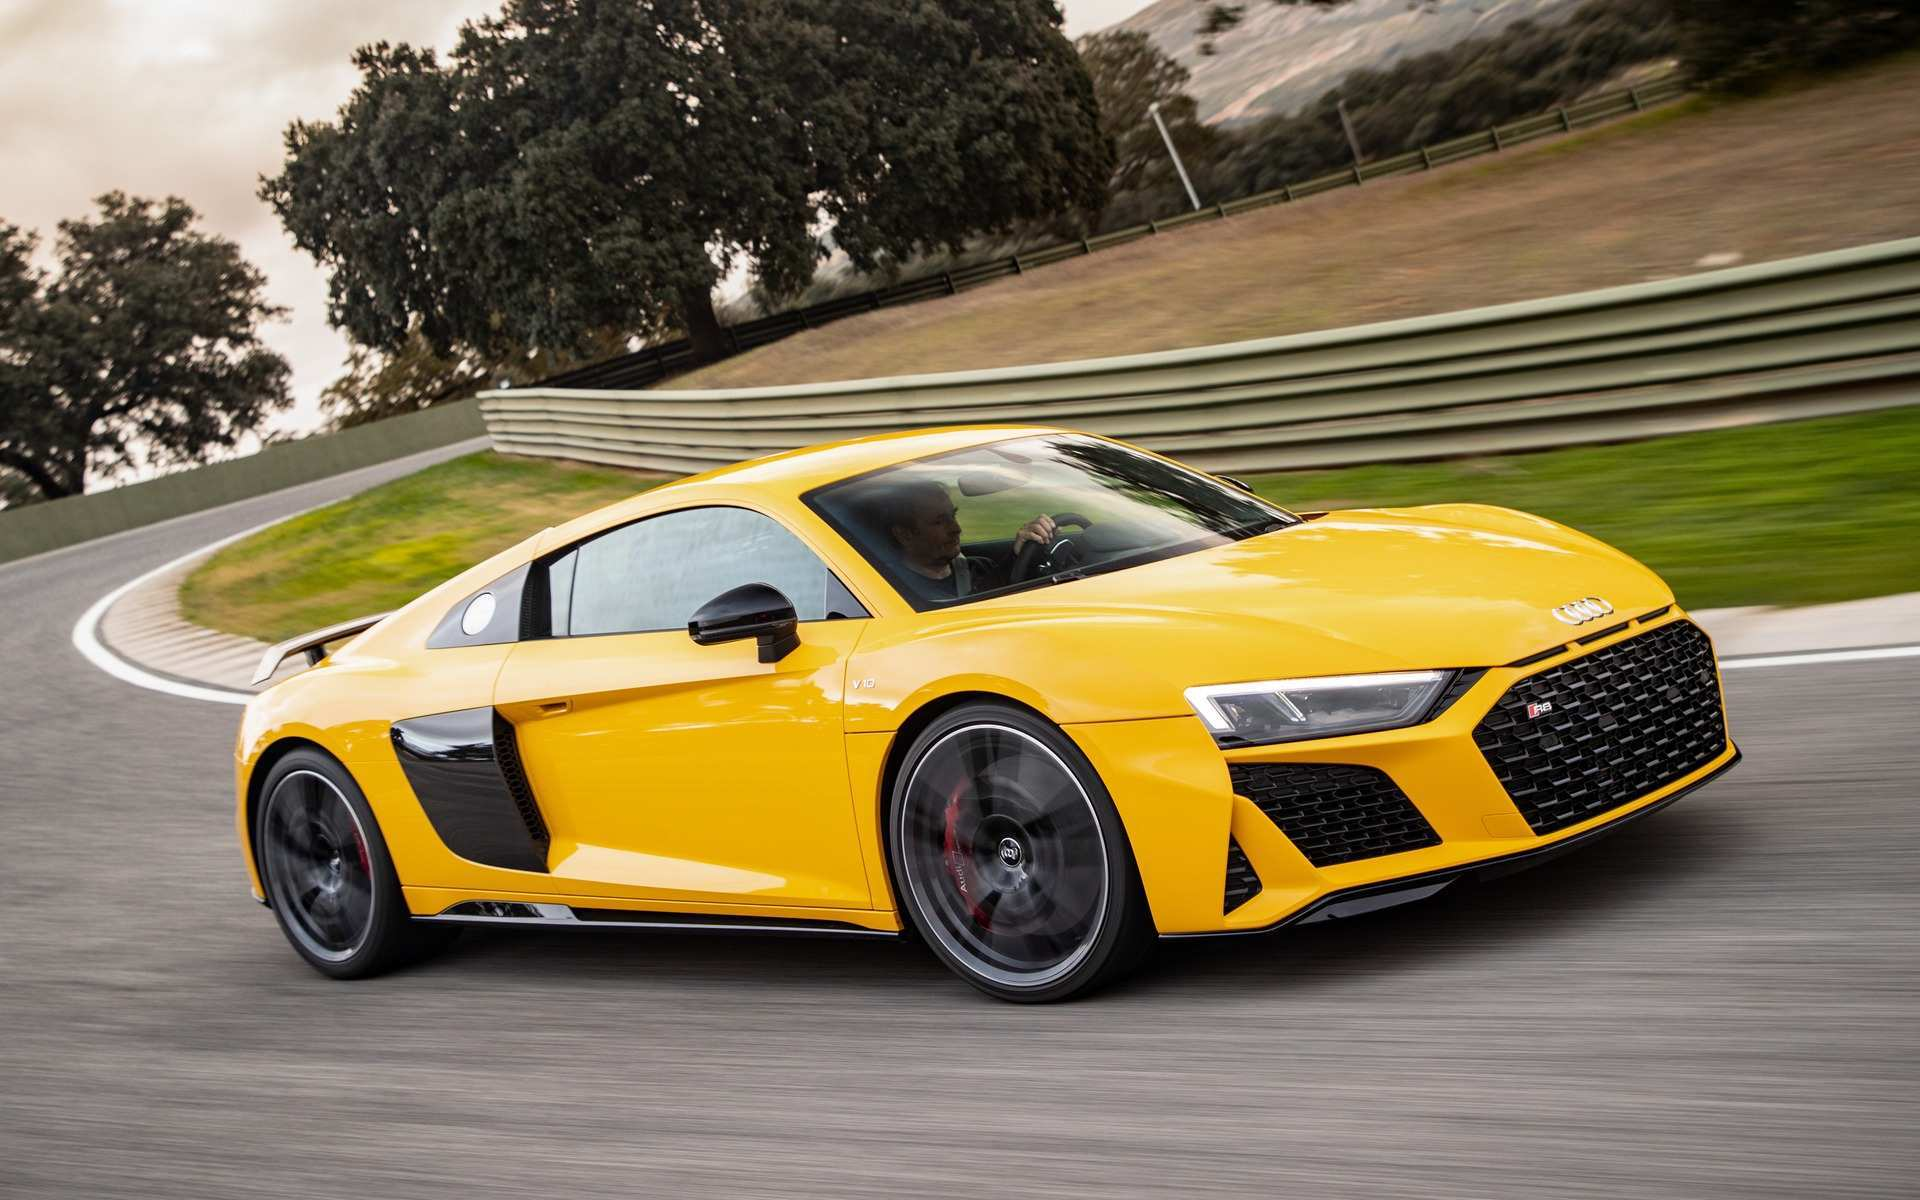 15 Great 2020 Audi R8 V10 Performance Performance and New Engine by 2020 Audi R8 V10 Performance